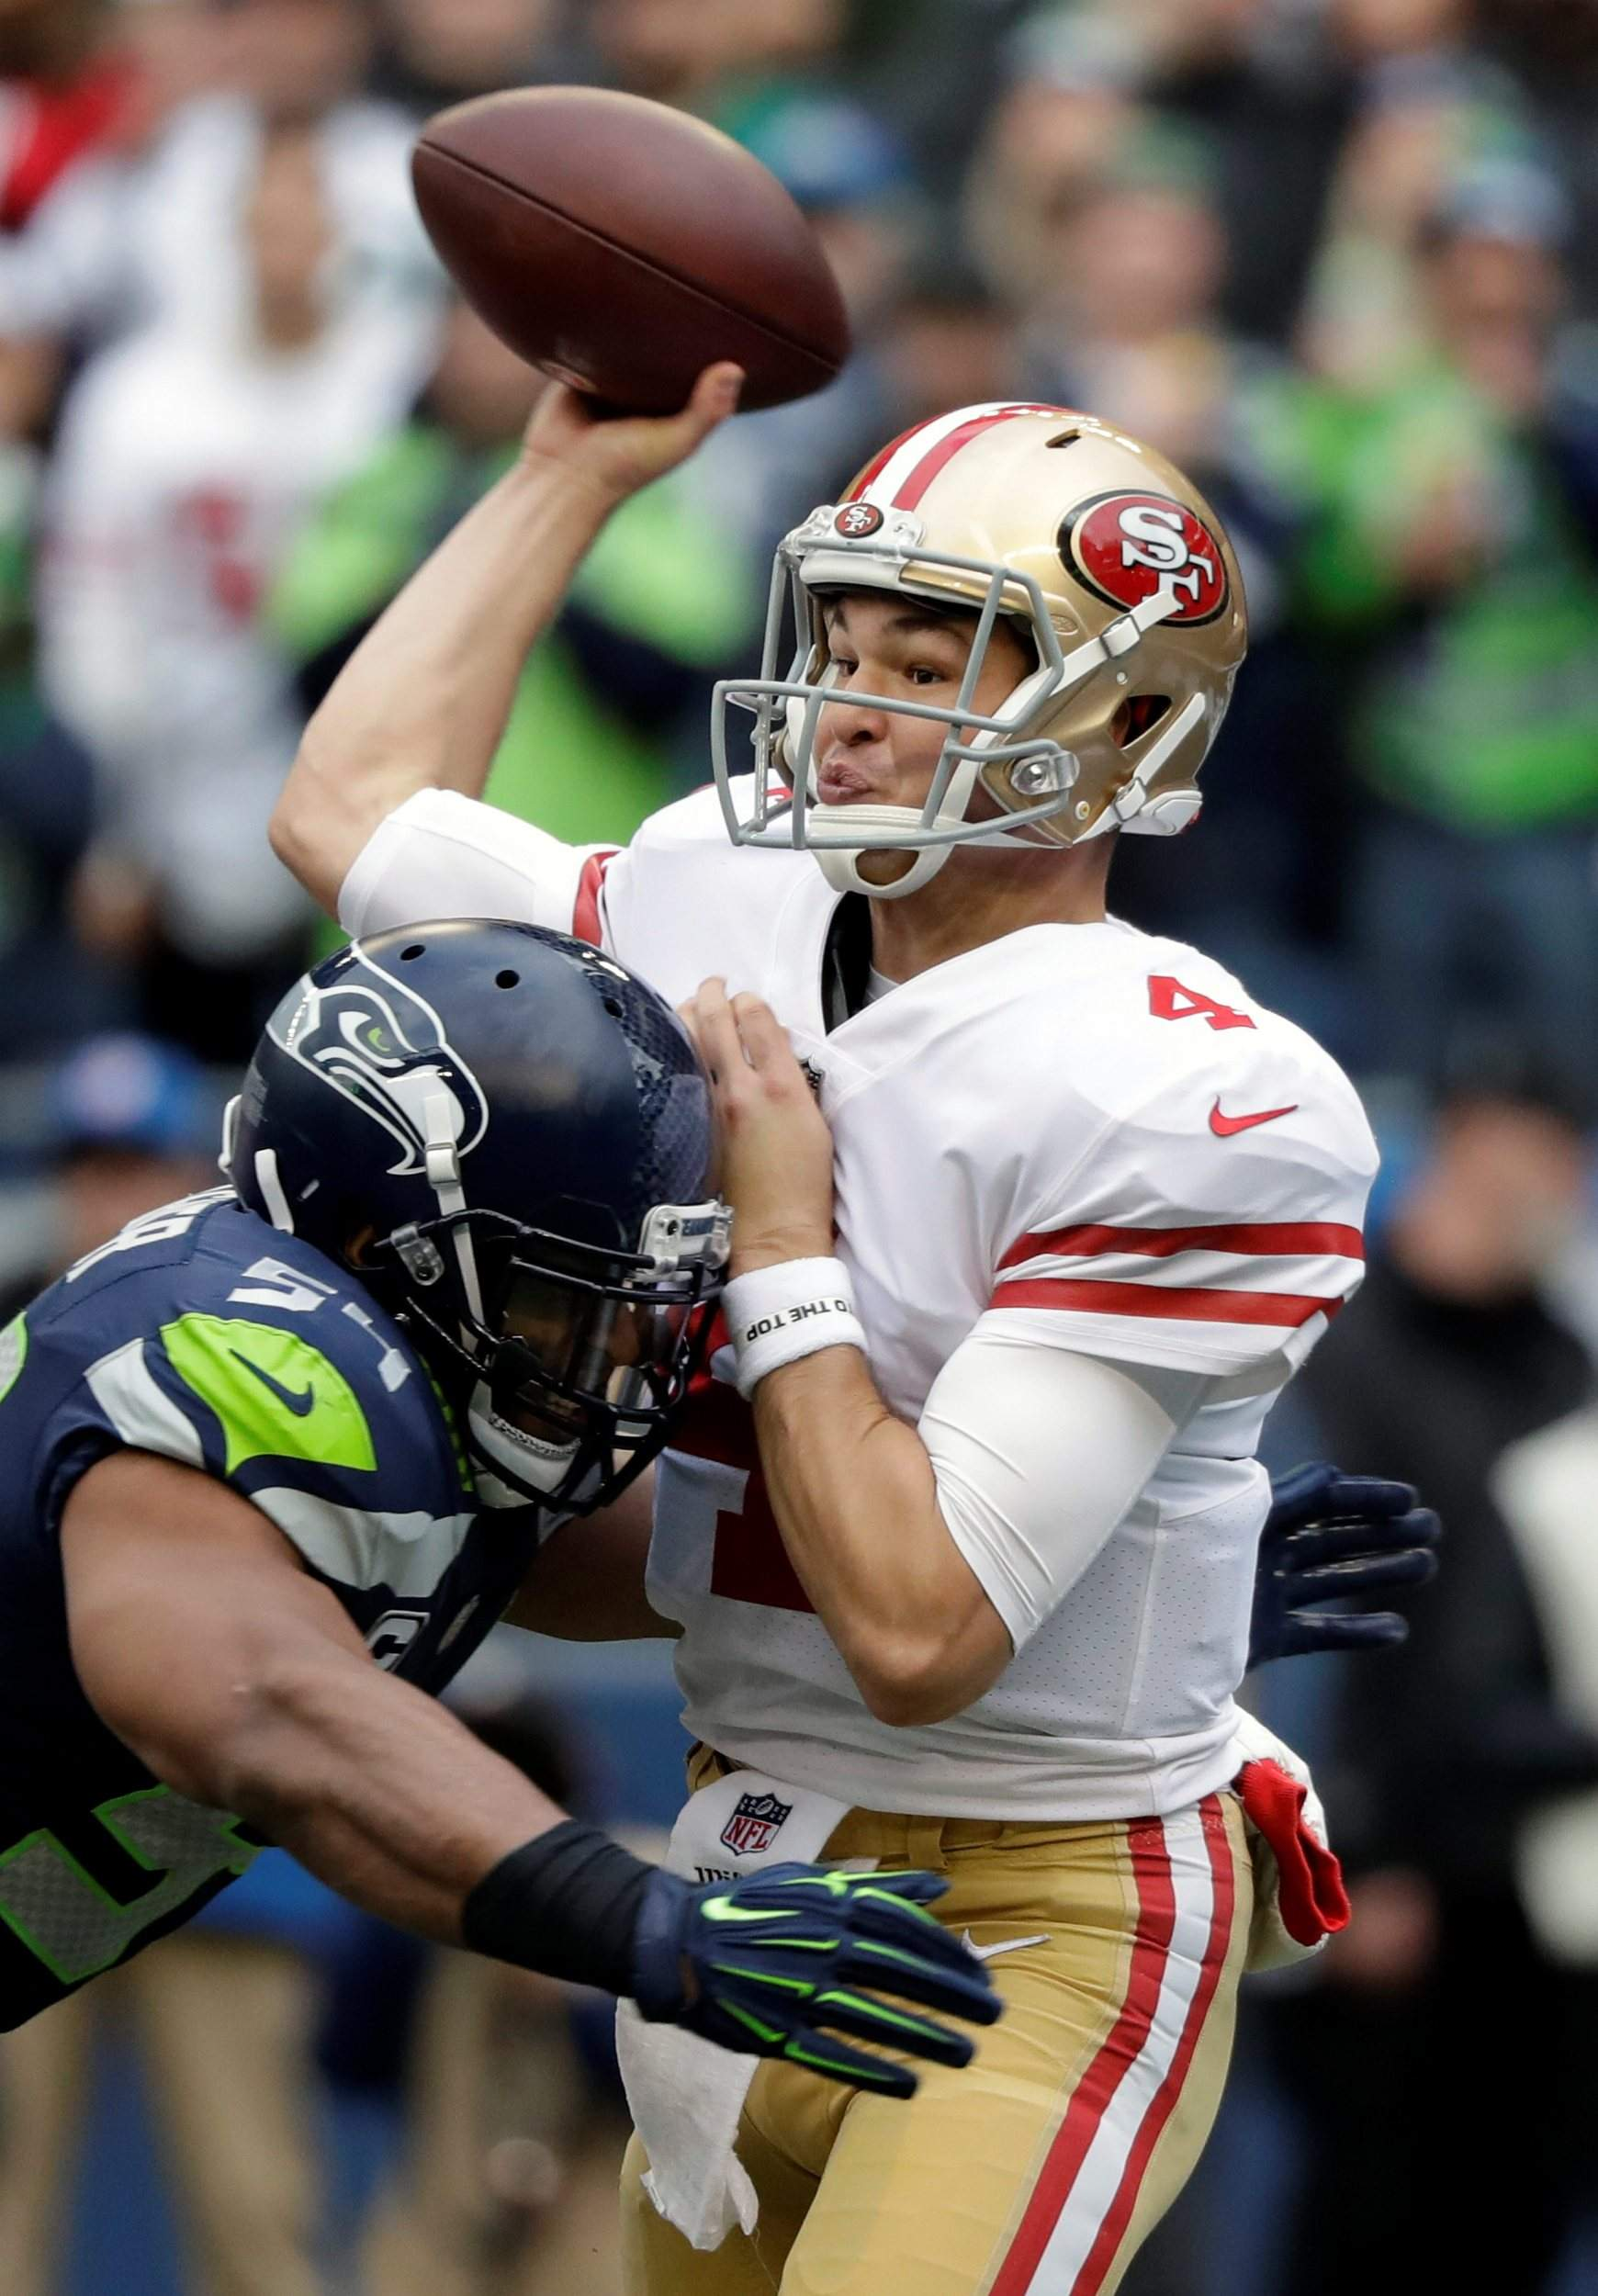 cc2645bd5db San Francisco 49ers quarterback Nick Mullens passes under pressure from  Seattle Seahawks middle linebacker Bobby Wagner during the first half in  Seattle ...